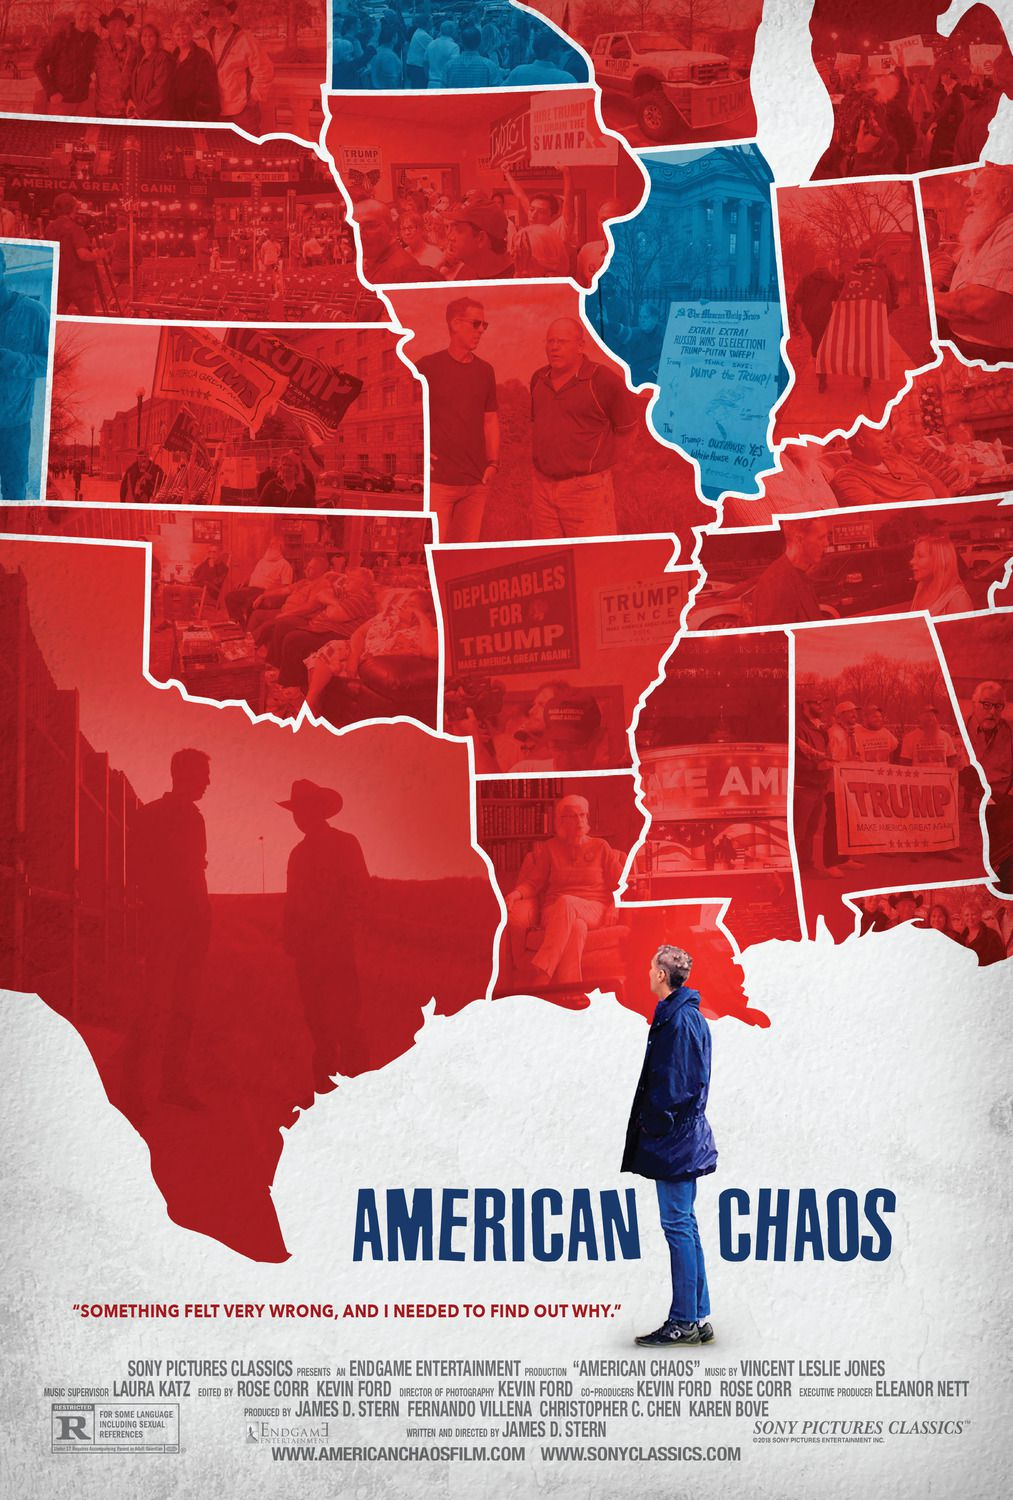 American Chaos (2018) - film poster